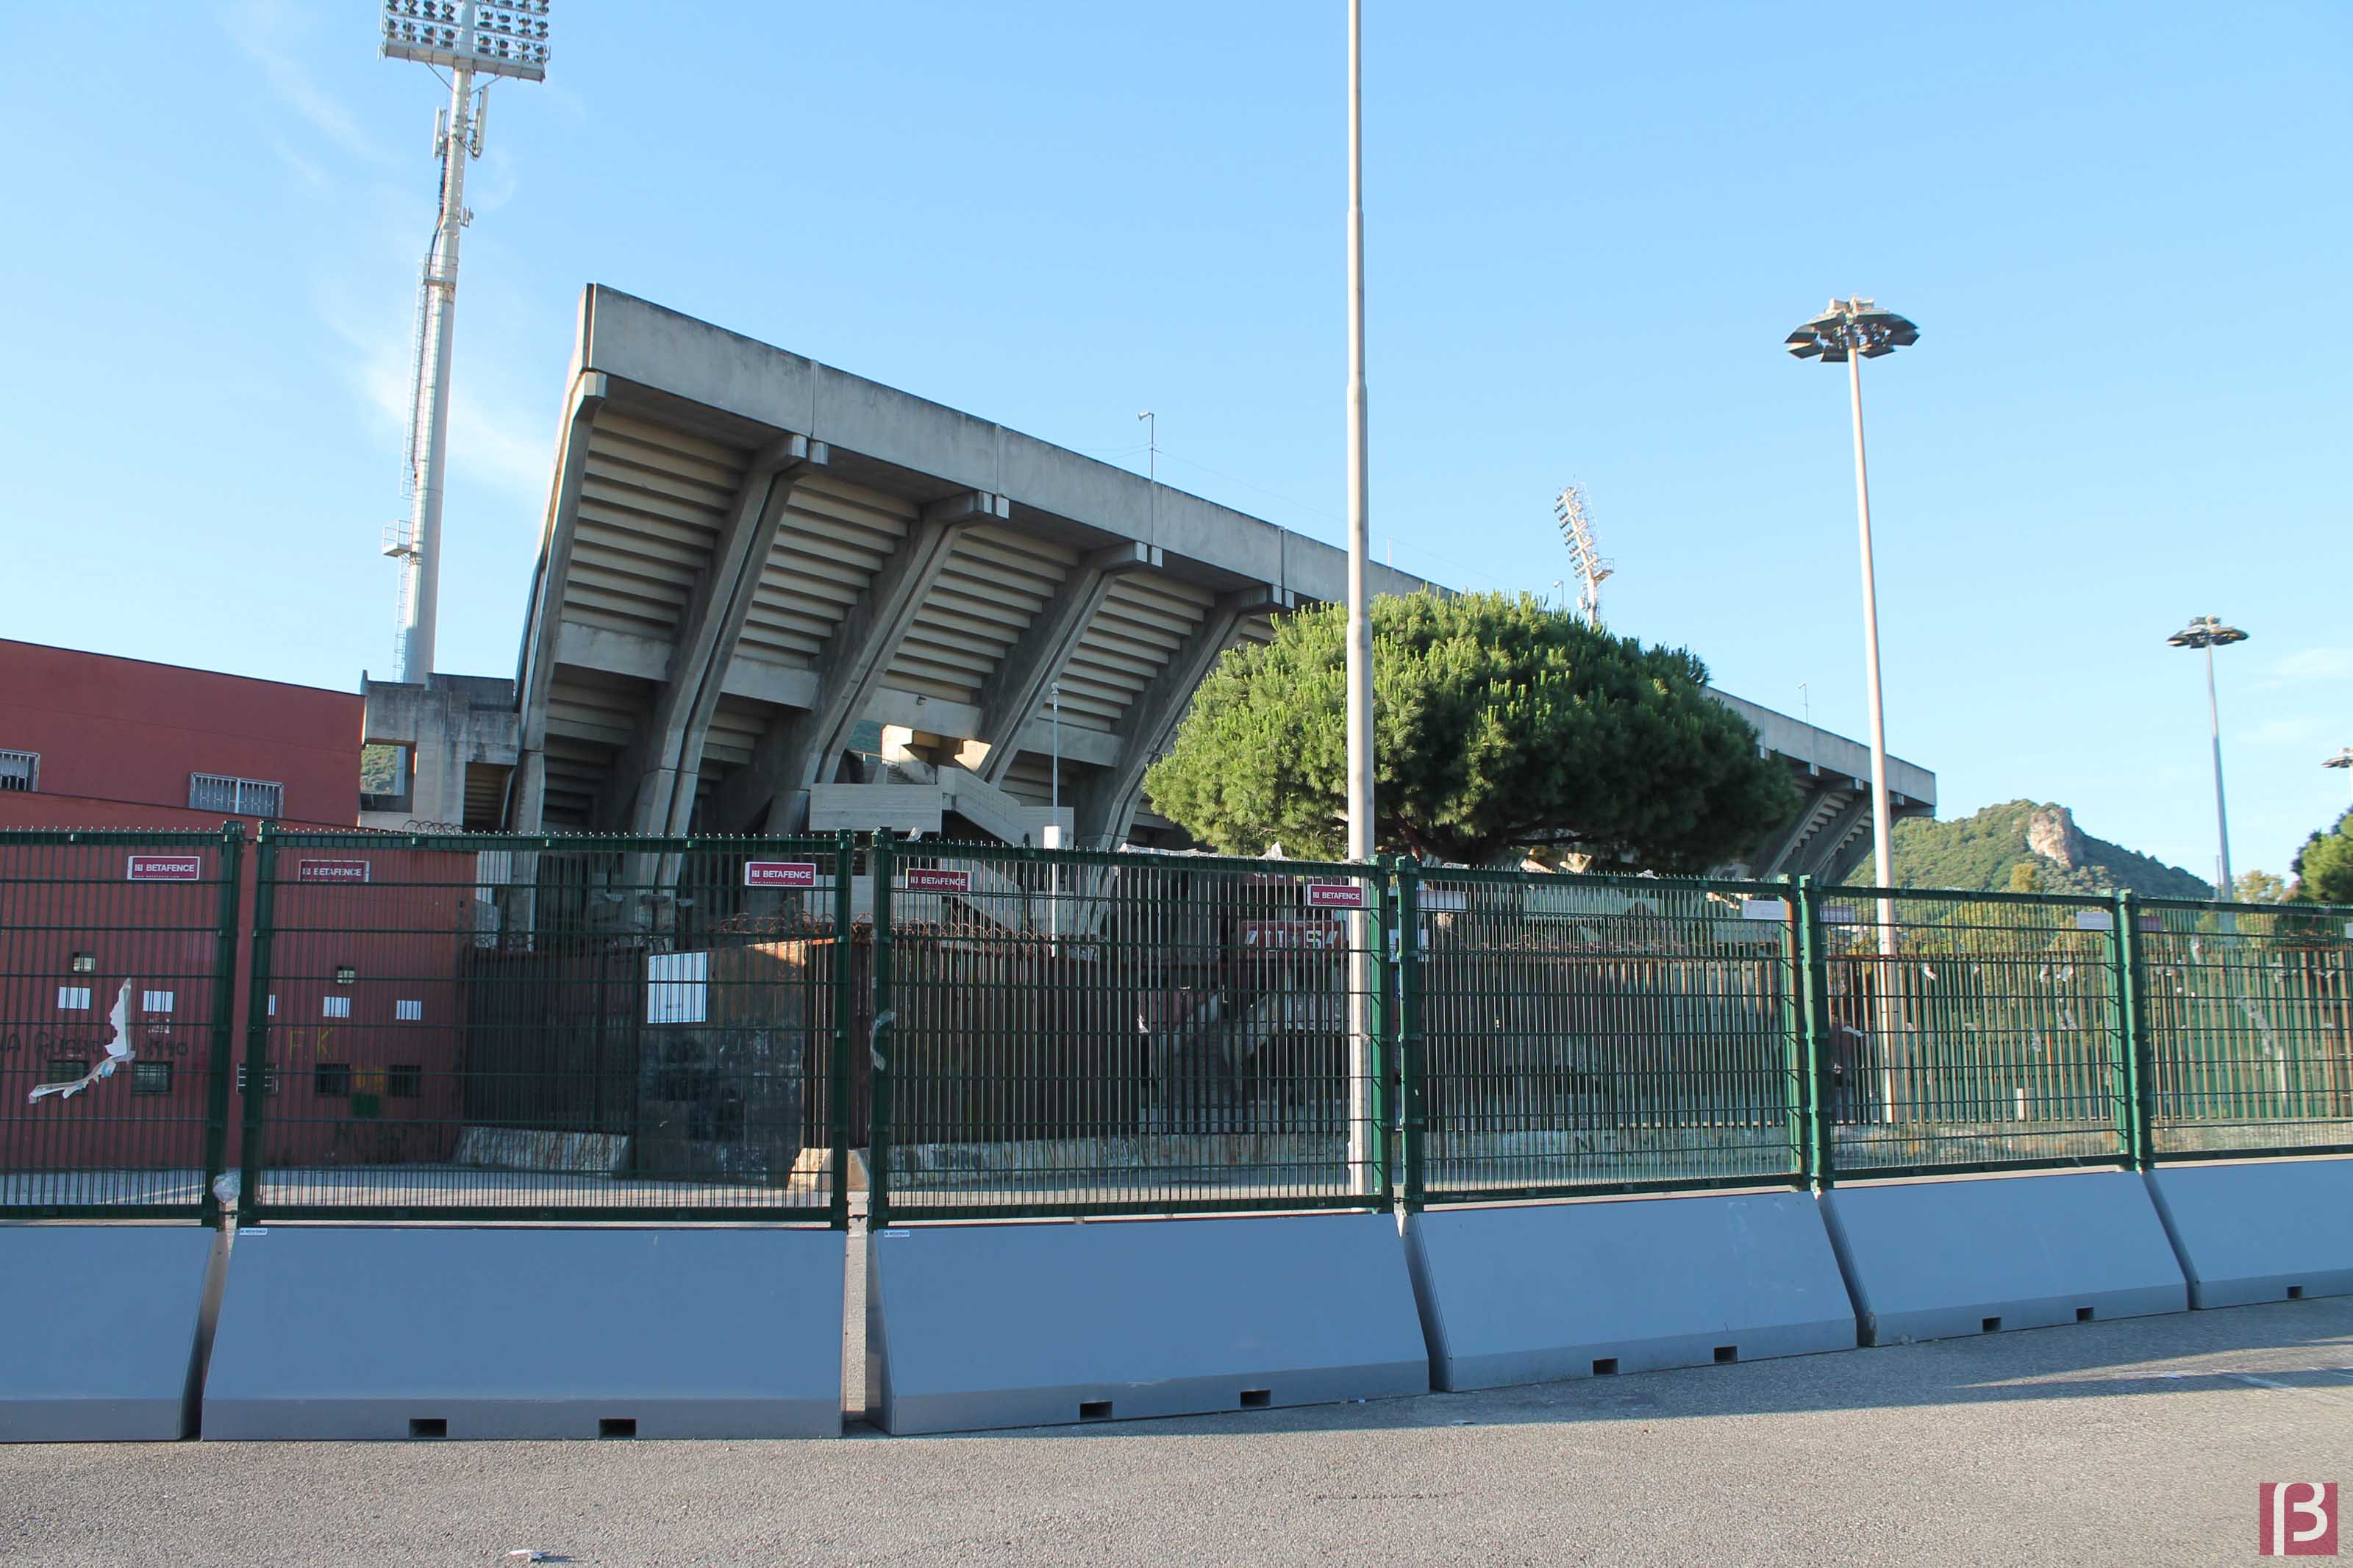 Stadio Salerno